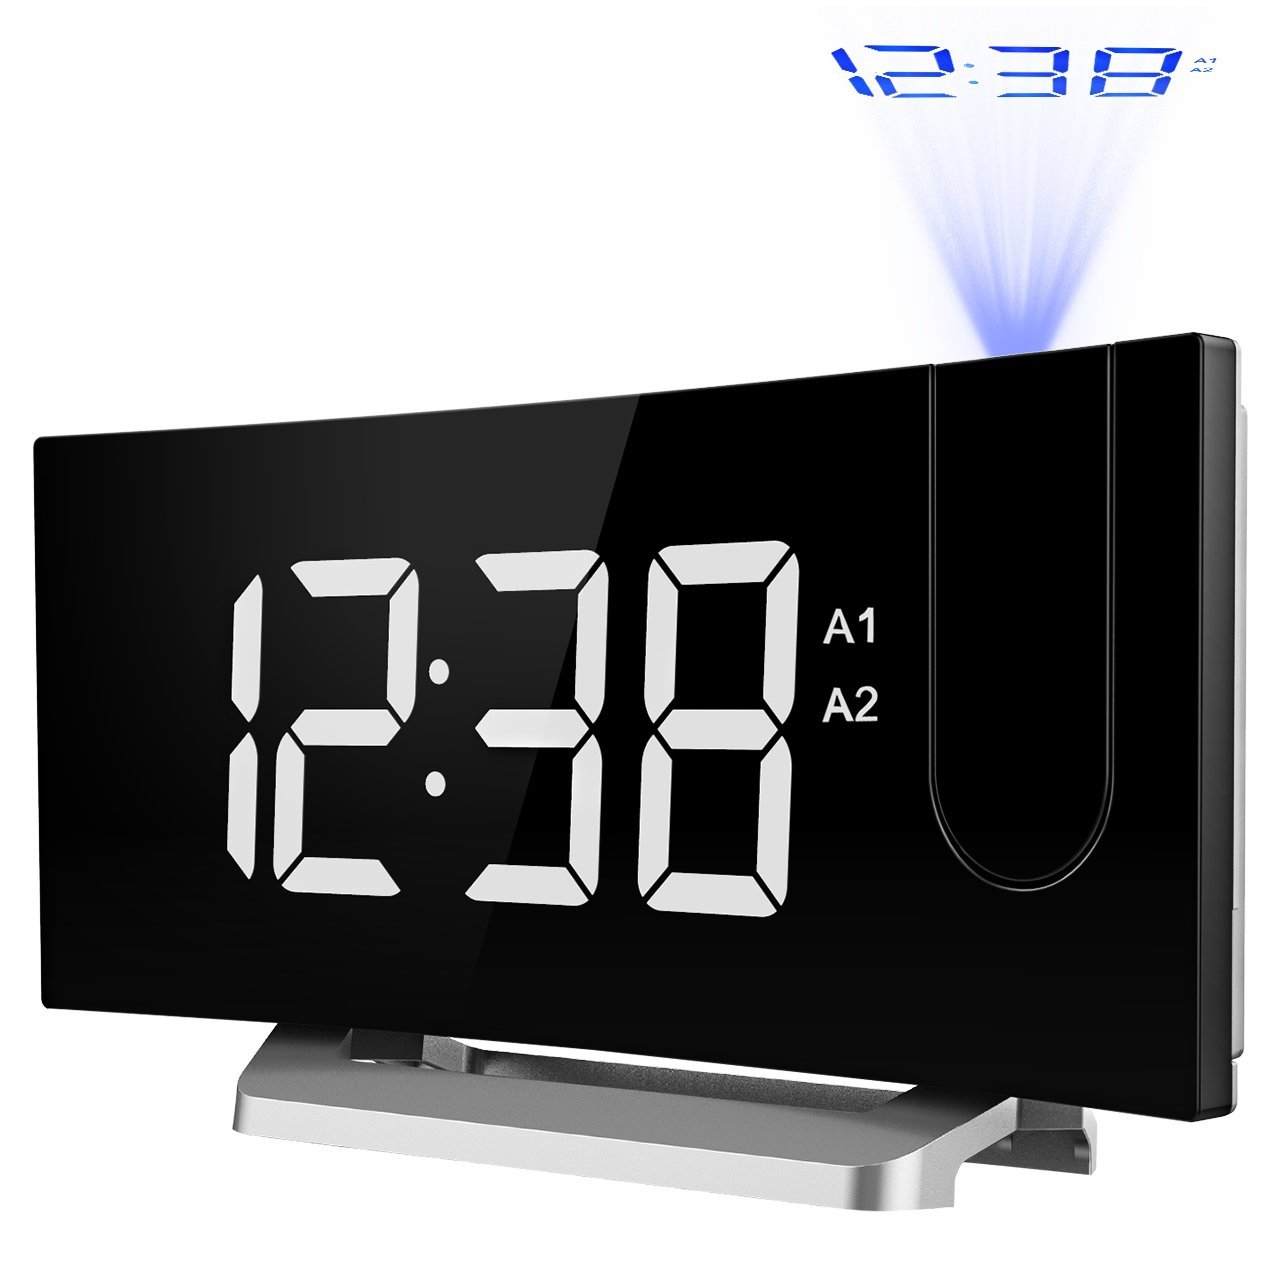 TOPELEK Projection, FM Radio Multiple Voice, Dual, 5'' Curved-Screen Digital Alarm Clock Adjustable Dimmer, Snooze Mode, Sleep Timer, USB Charging Port.Blue Projection Clock